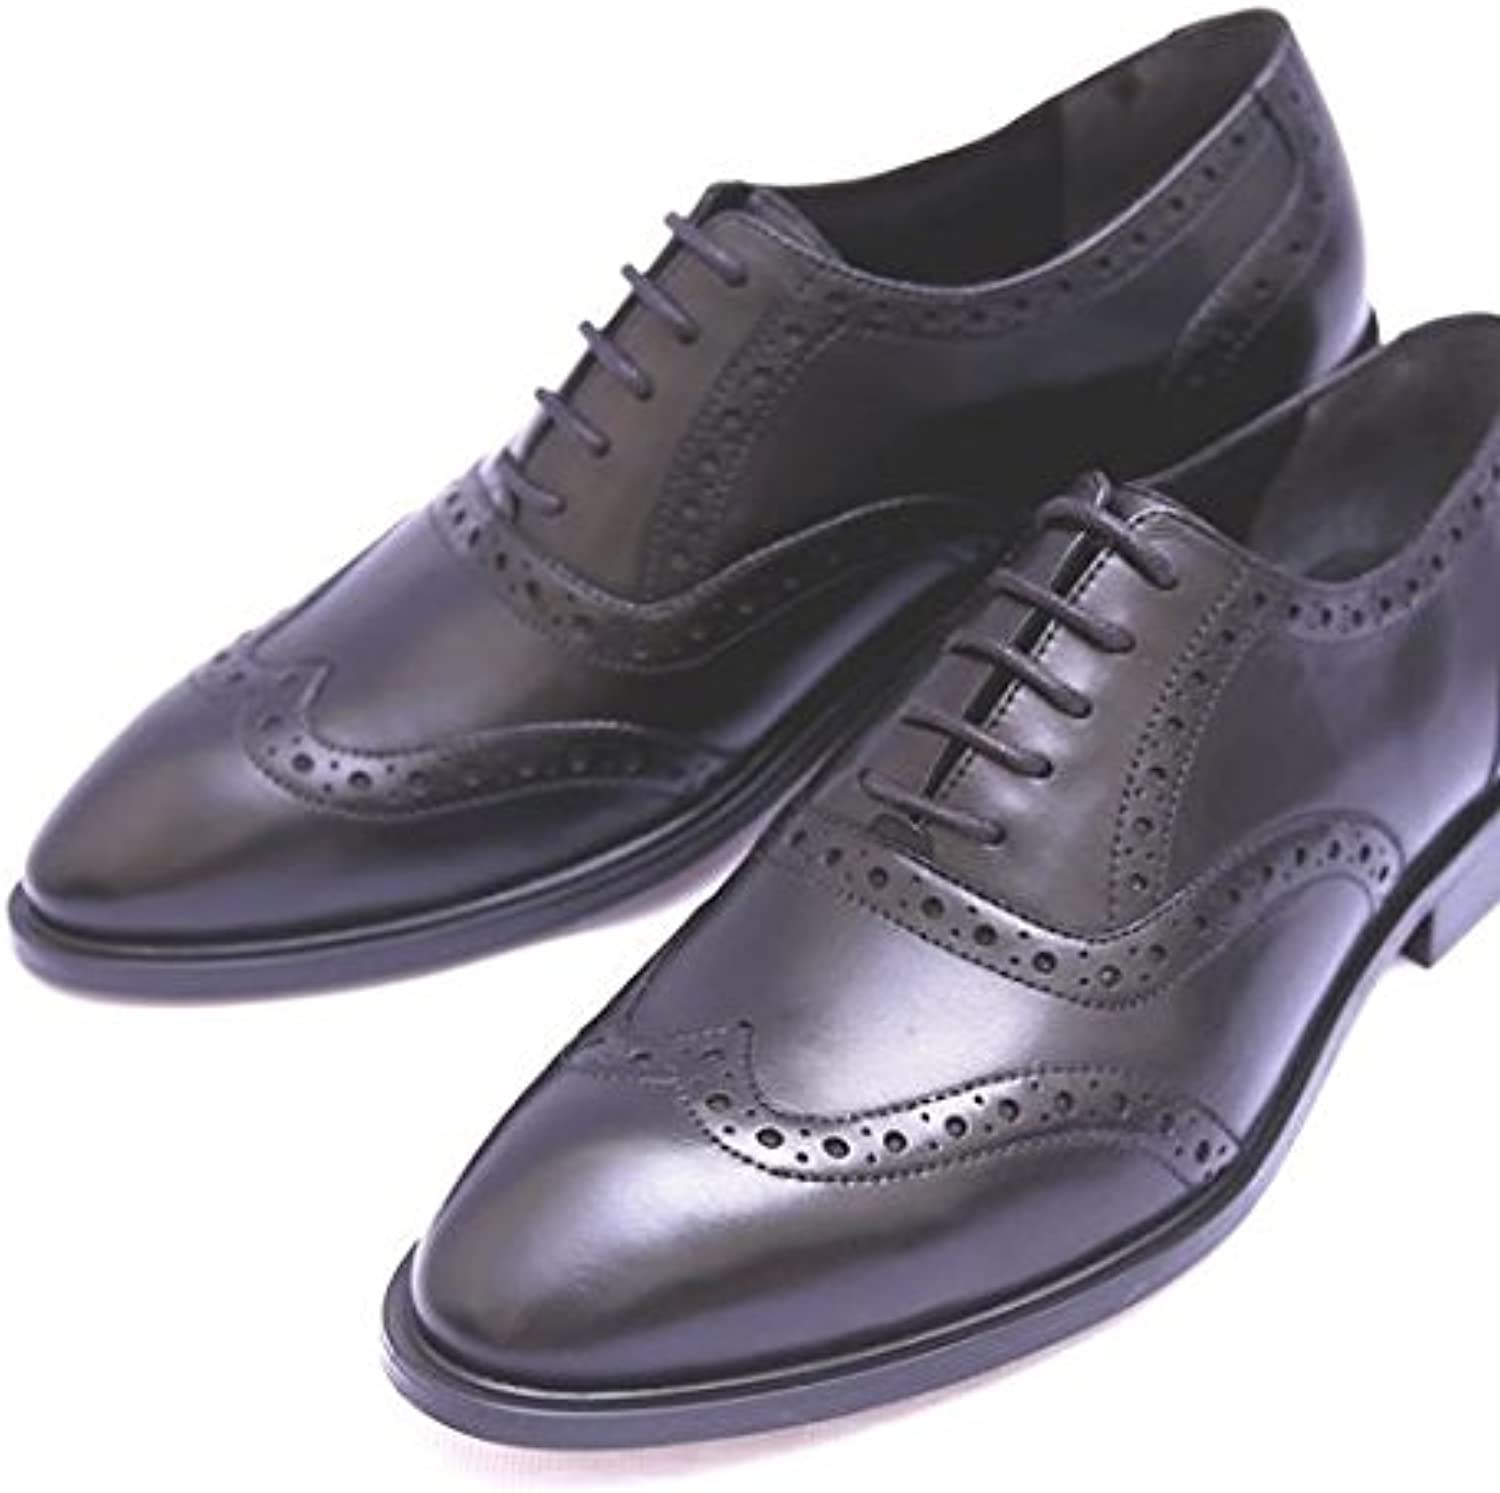 EIGHTYEIGHTSTEPS Hand Made Leather shoes in Calf Leather Oxford Style Black color Art NO. 004-2